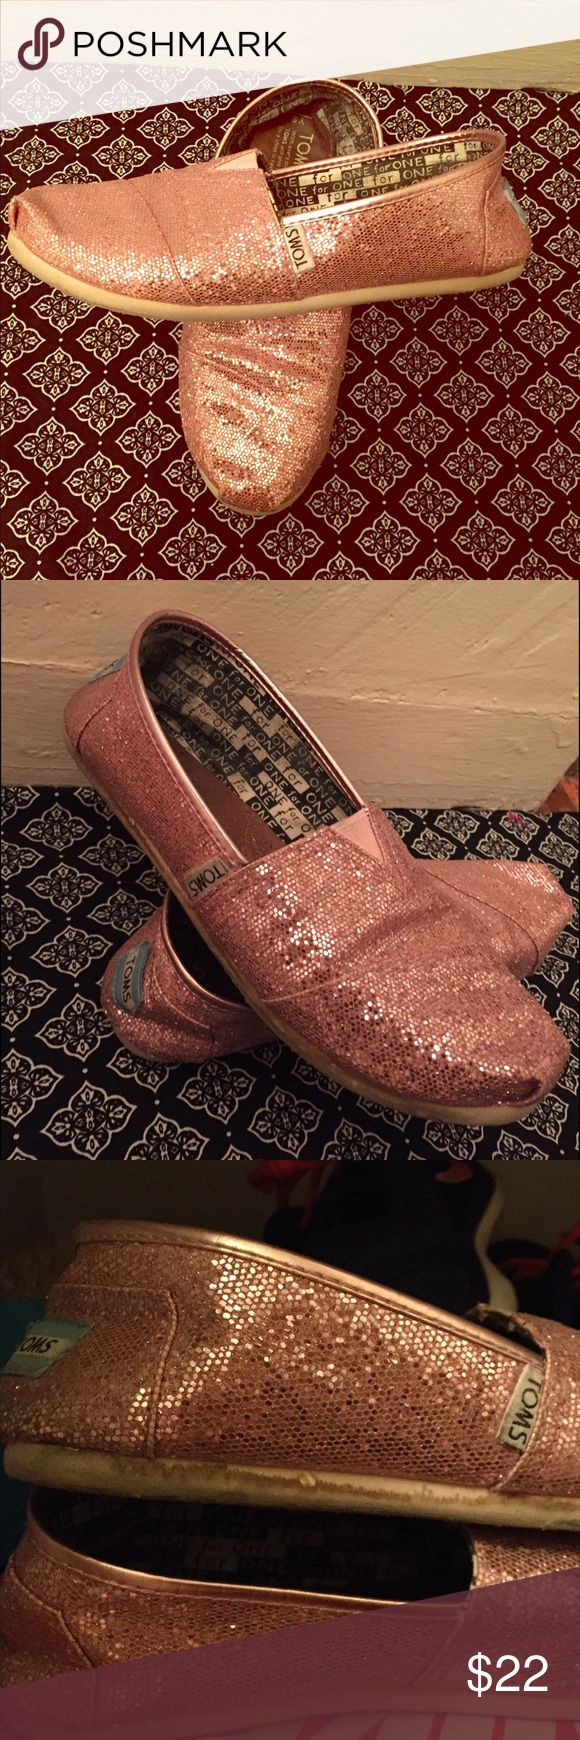 Pink Glitter Toms 5Y Women's 7 Good used condition pink and sparkly! TOMS Shoes Flats & Loafers